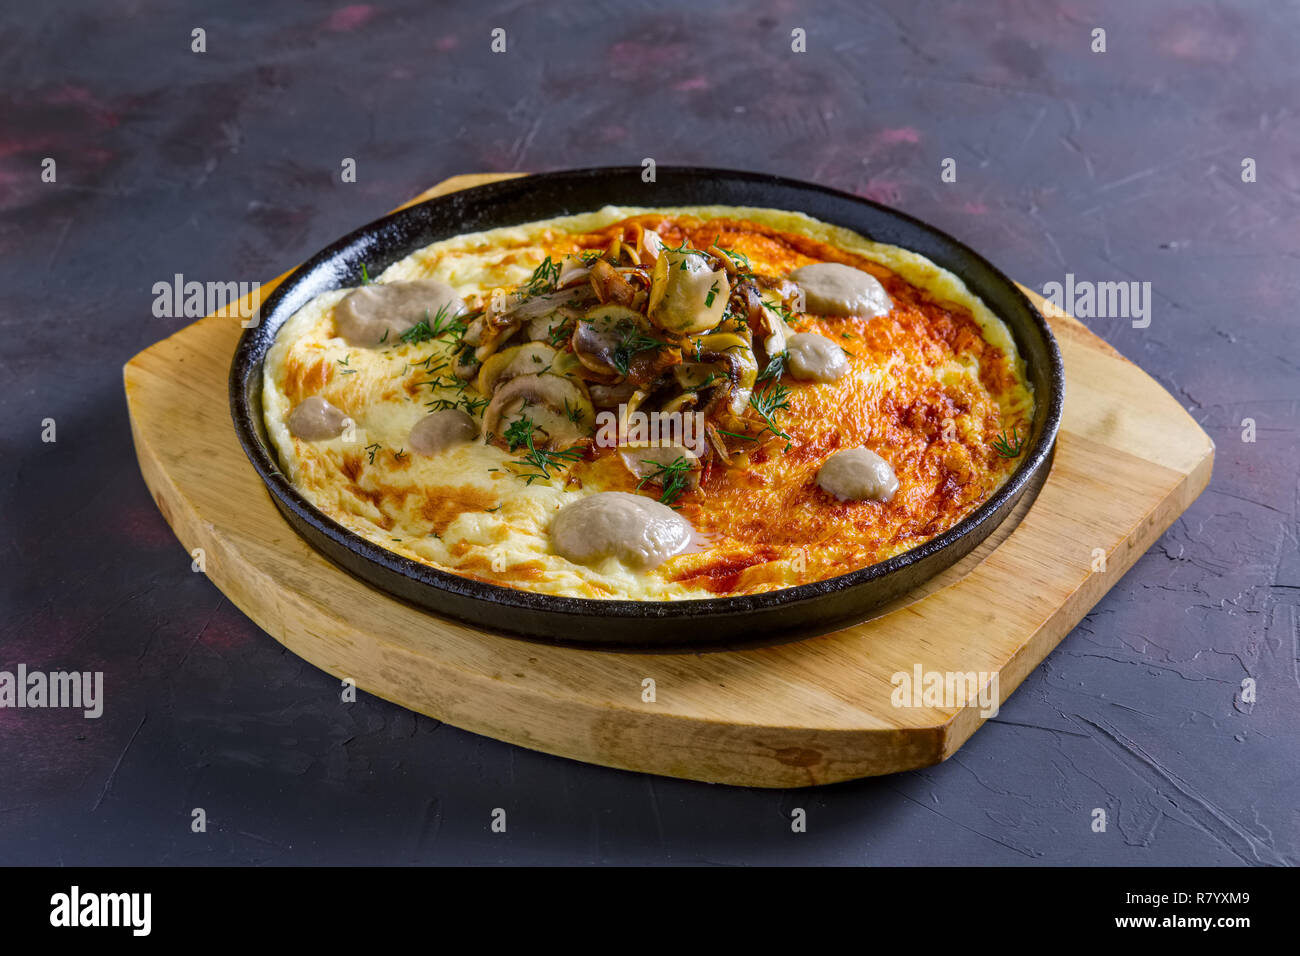 Vegetarian omelette with mushrooms in cast iron pan - Stock Image